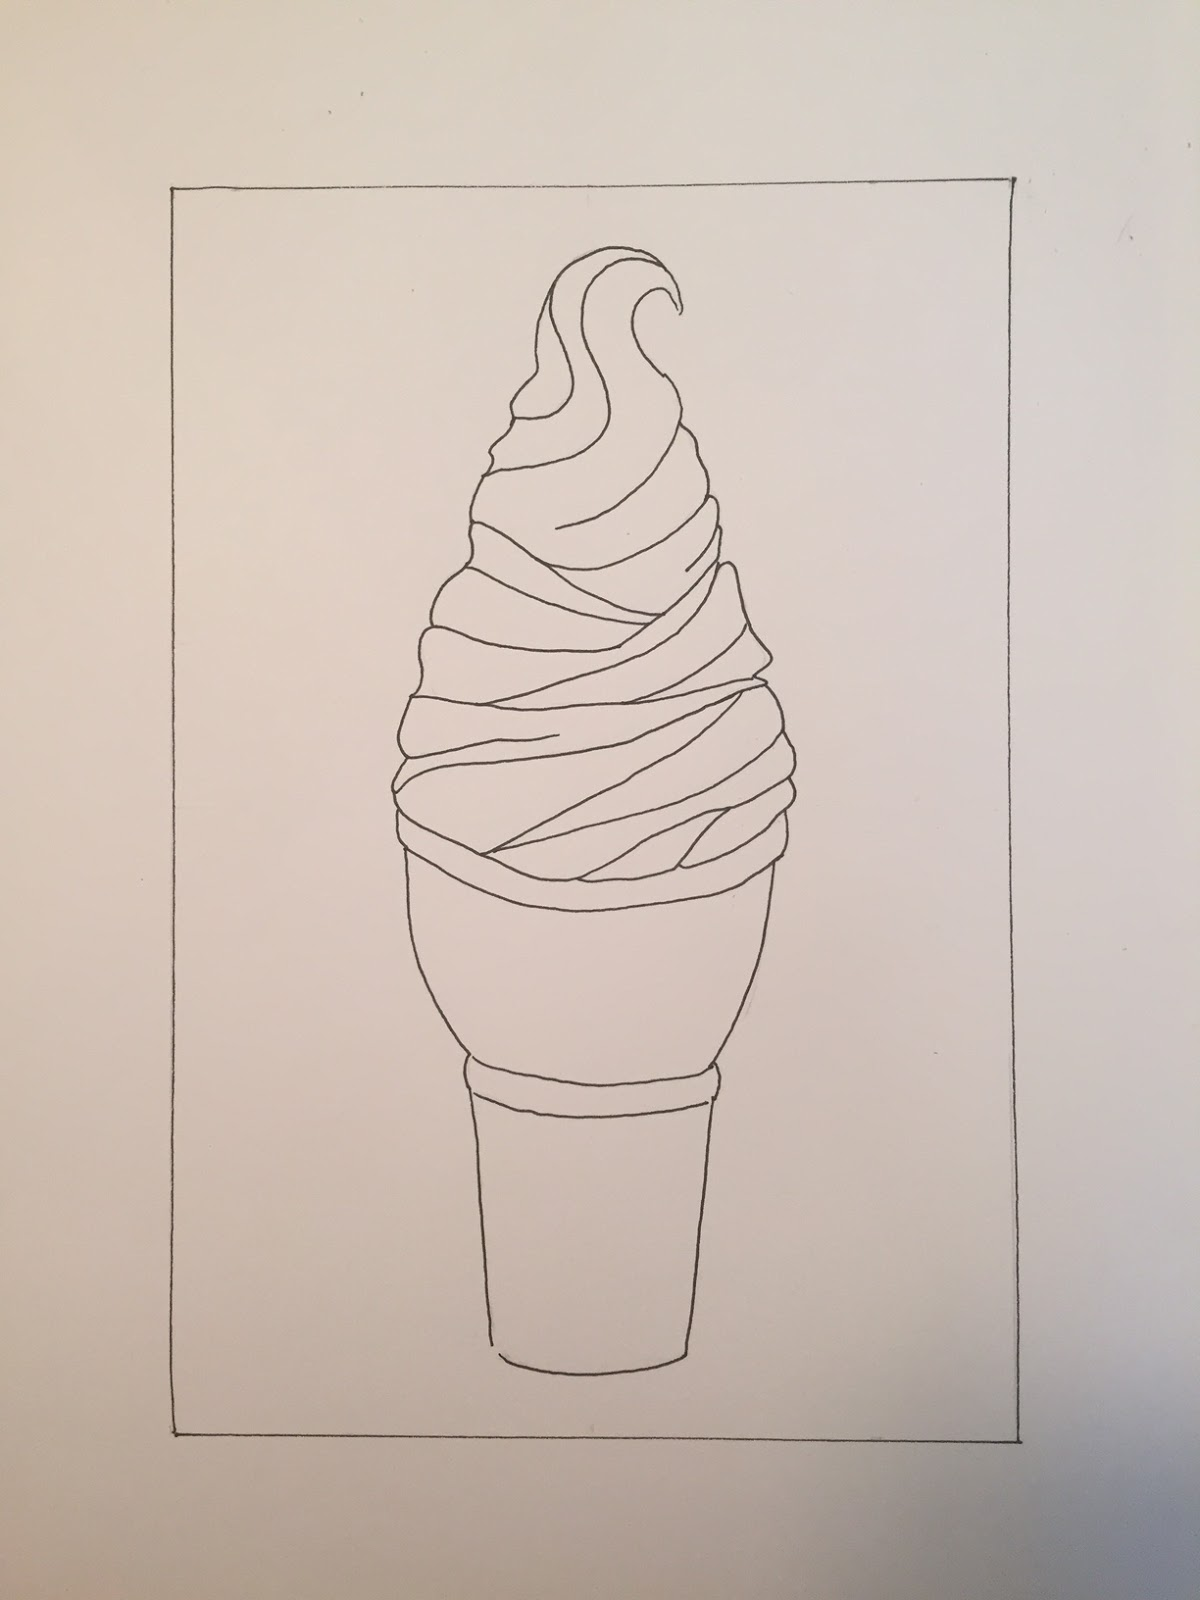 Drawn ice cream Ice idea Zentangle I cream